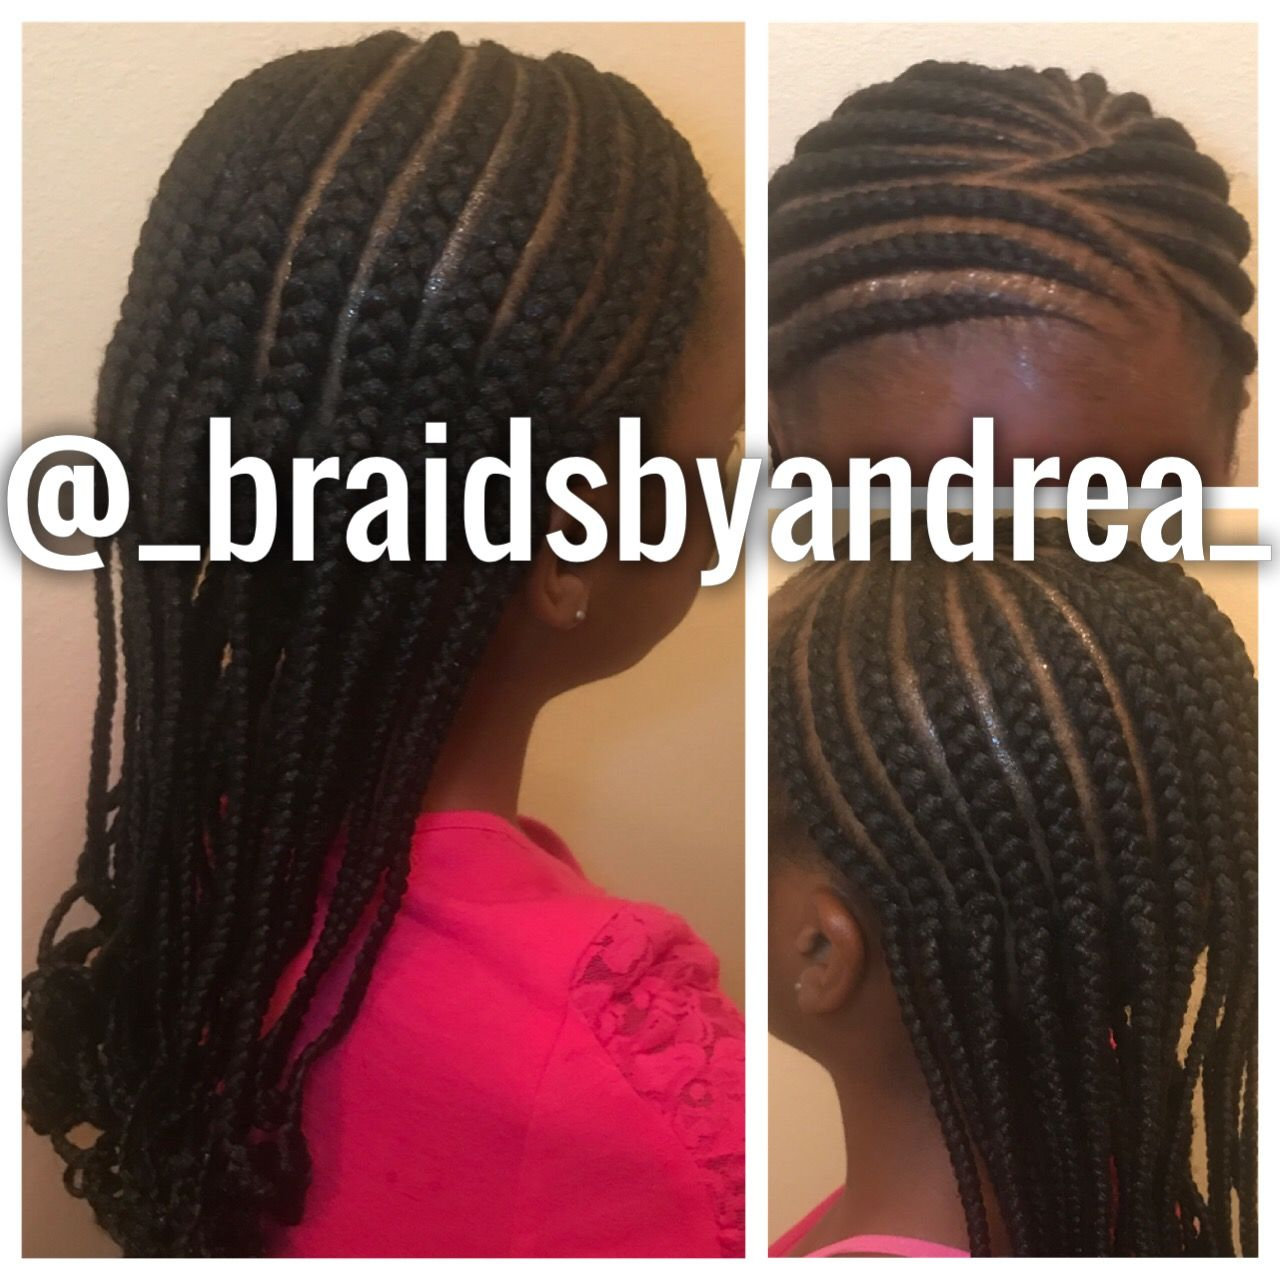 Simple Kids Braid Style 2 Layers Curled Hair Styles Girl Hairstyles Kids Hairstyles